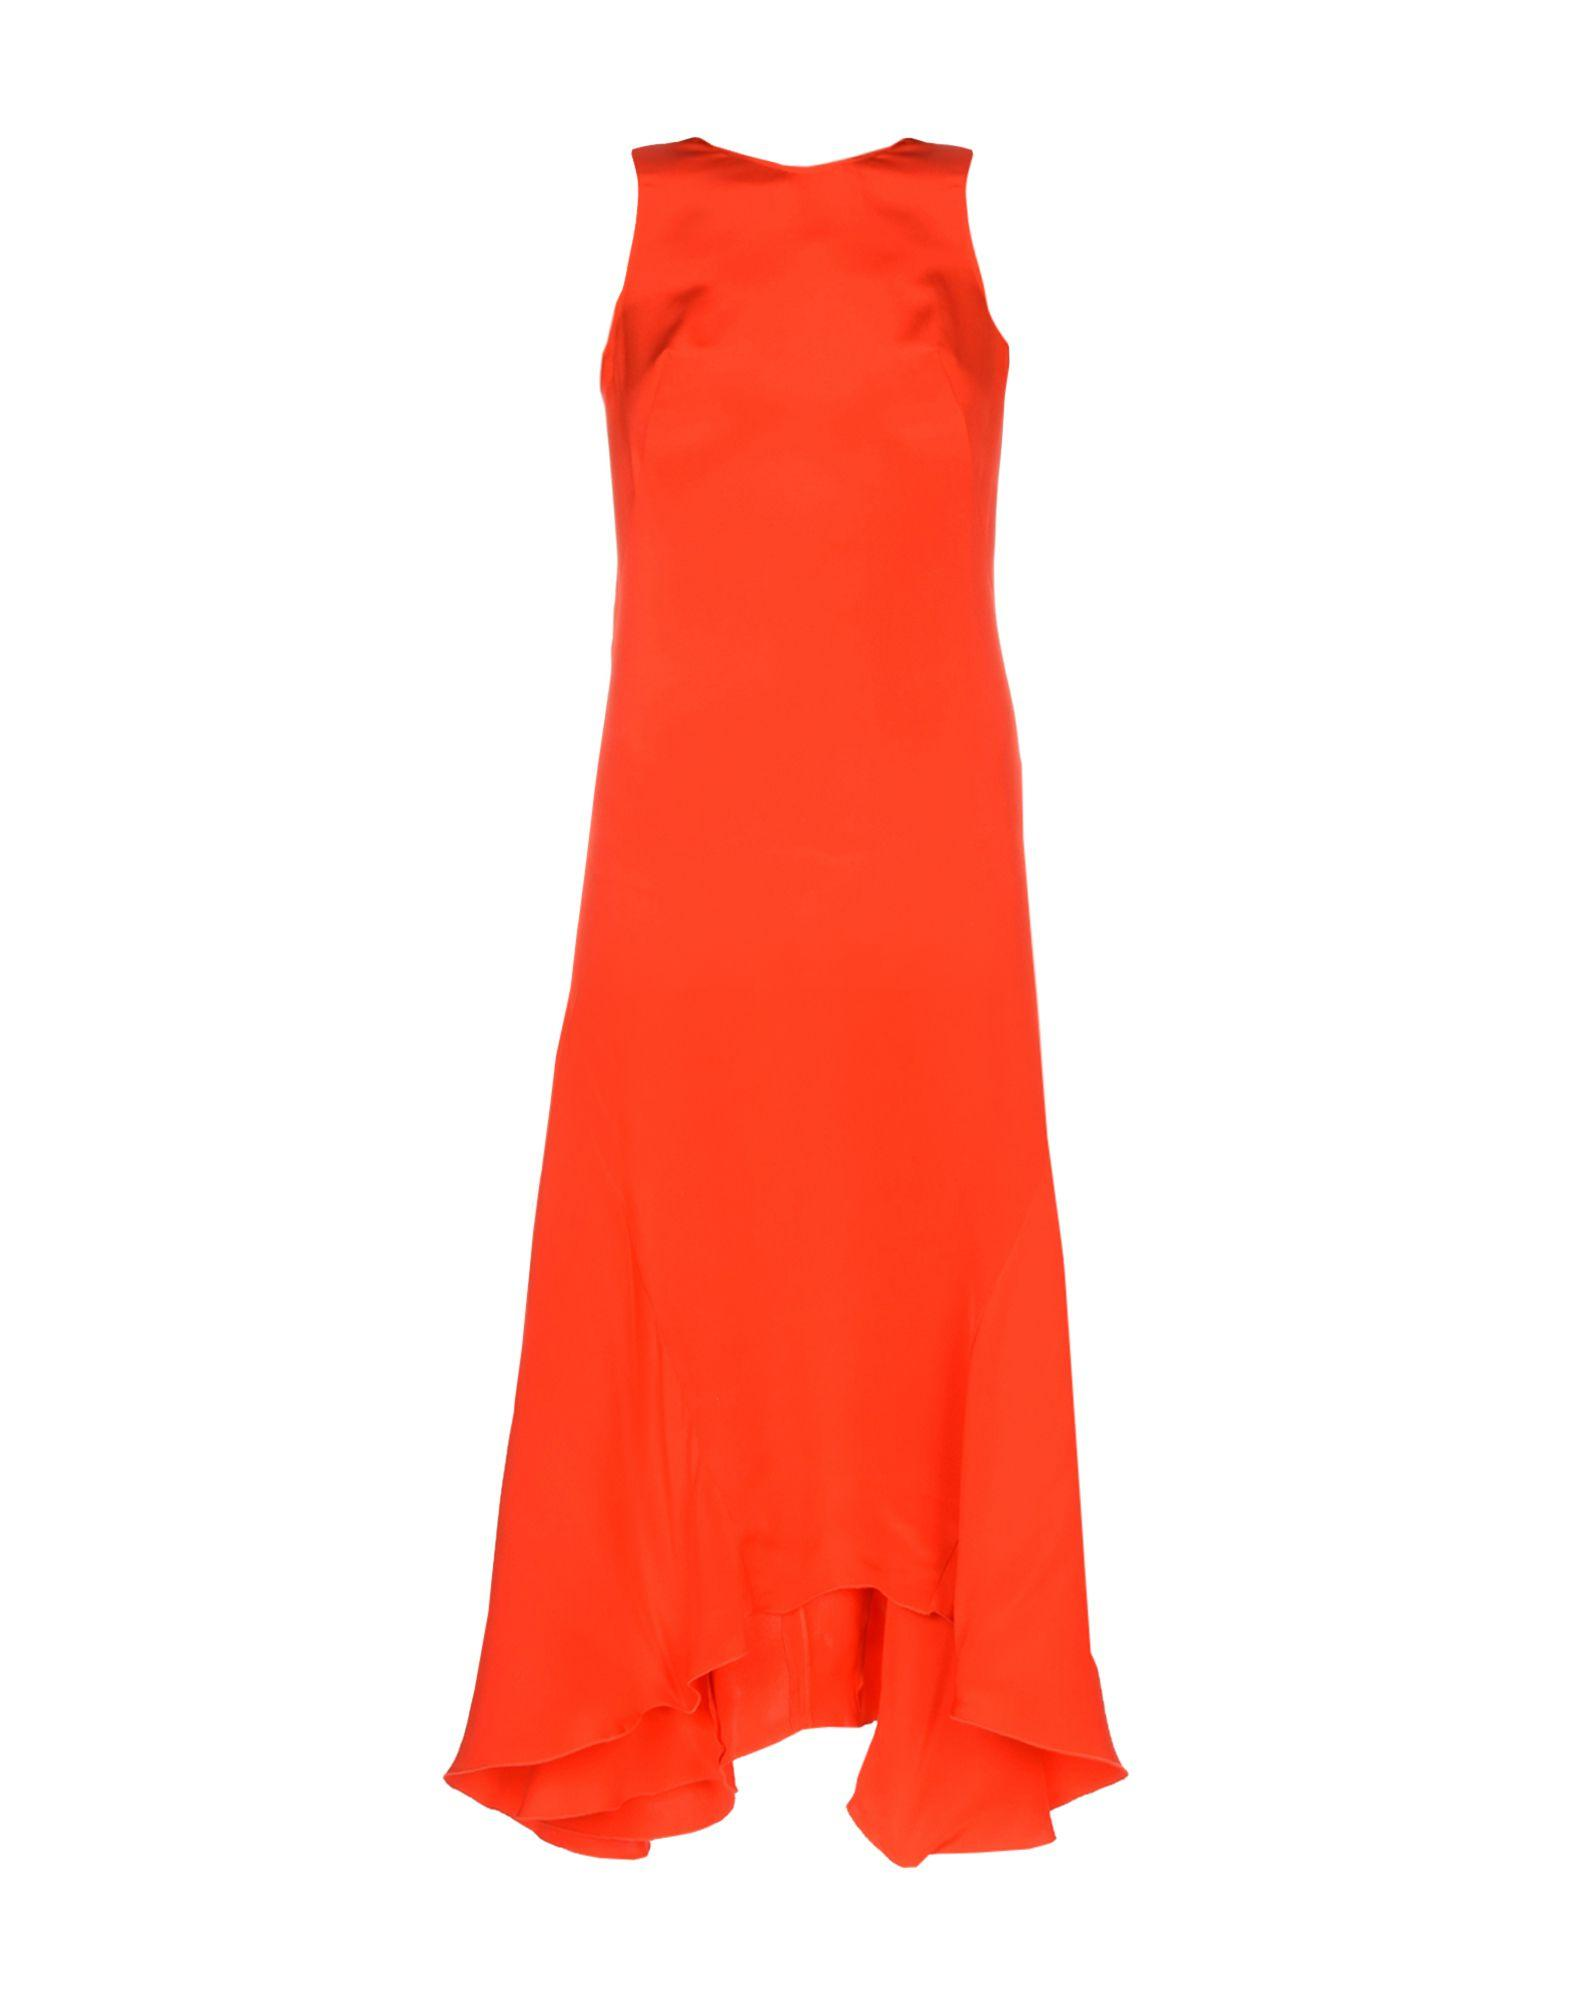 Cedric Charlier 3/4 Length Dresses In Red